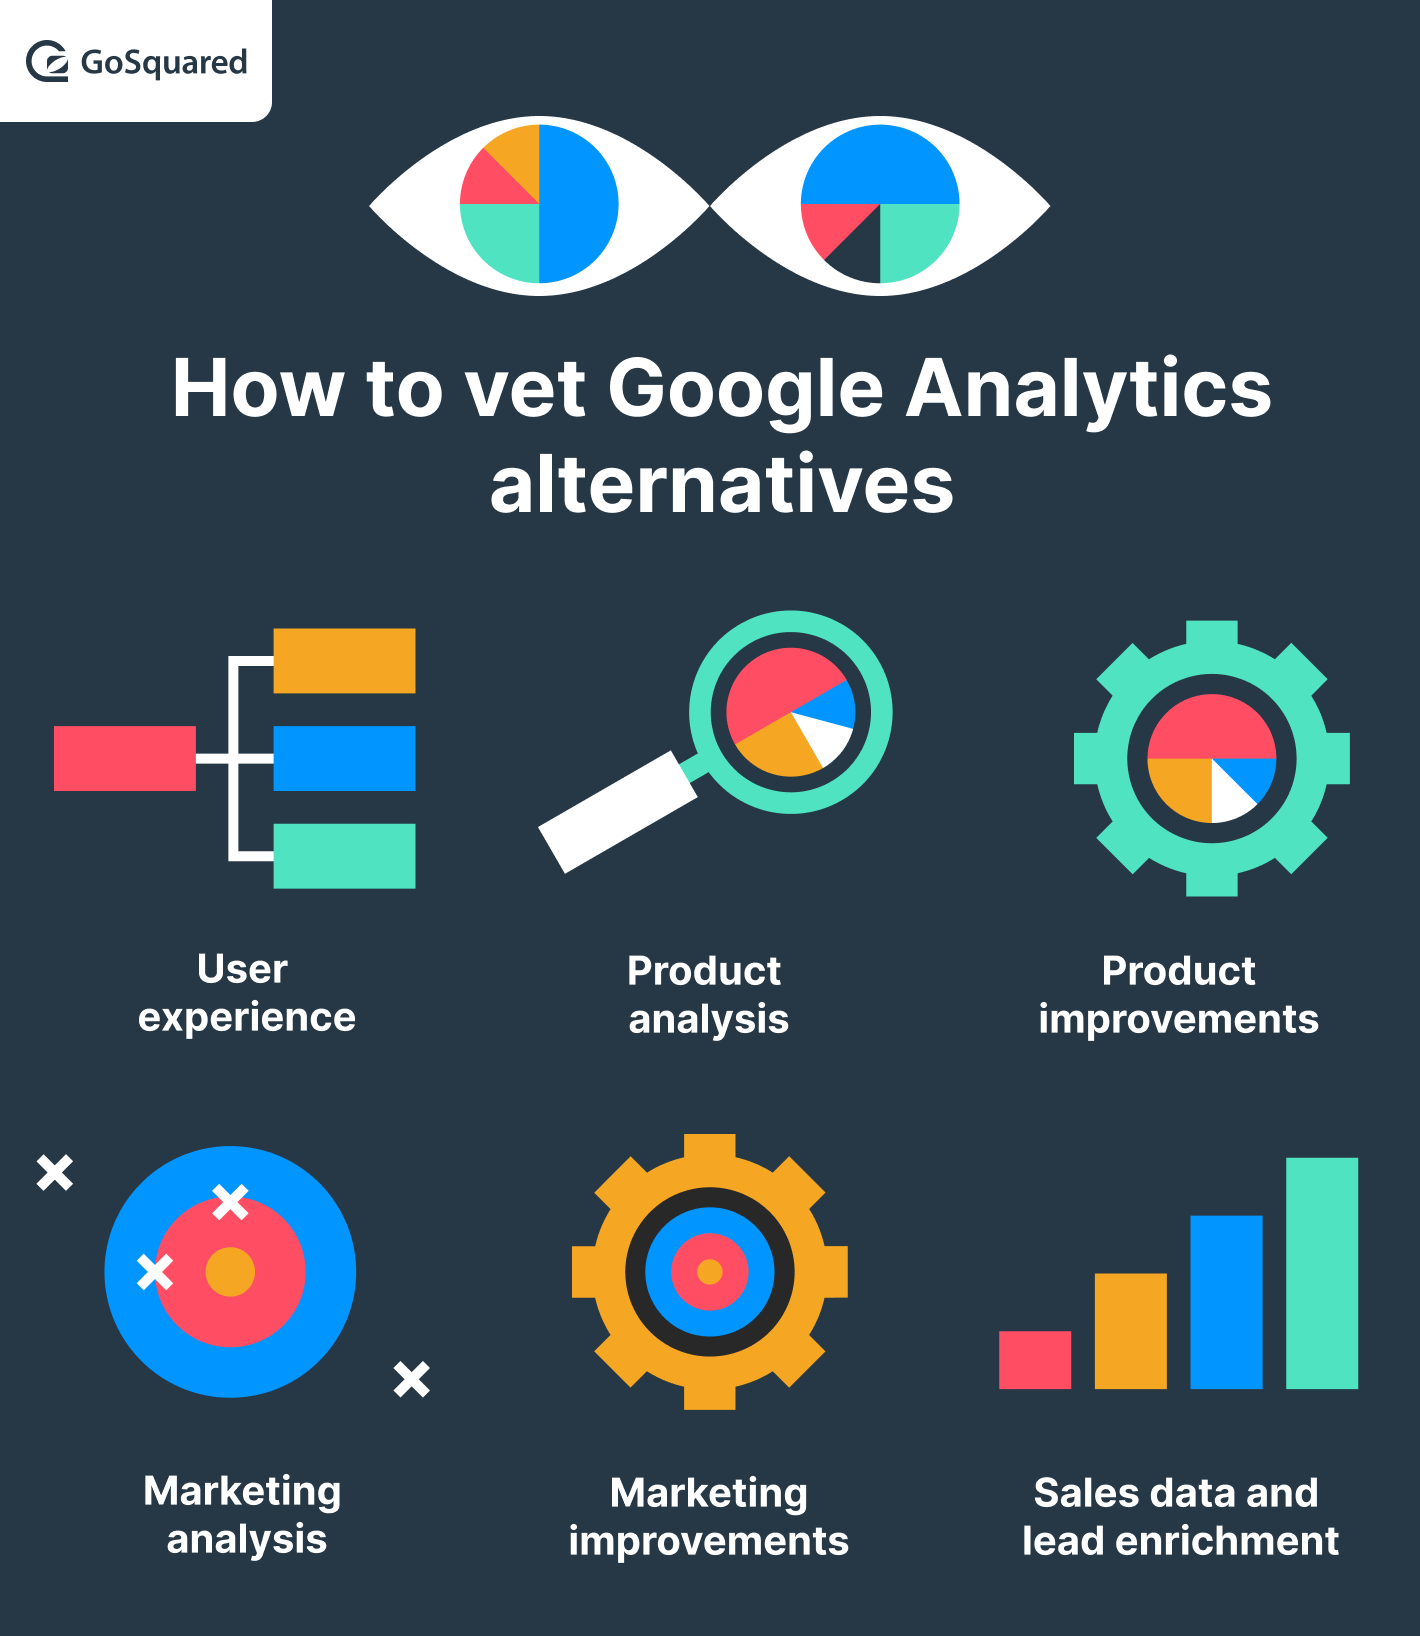 How to vet Google Analytics Alternatives